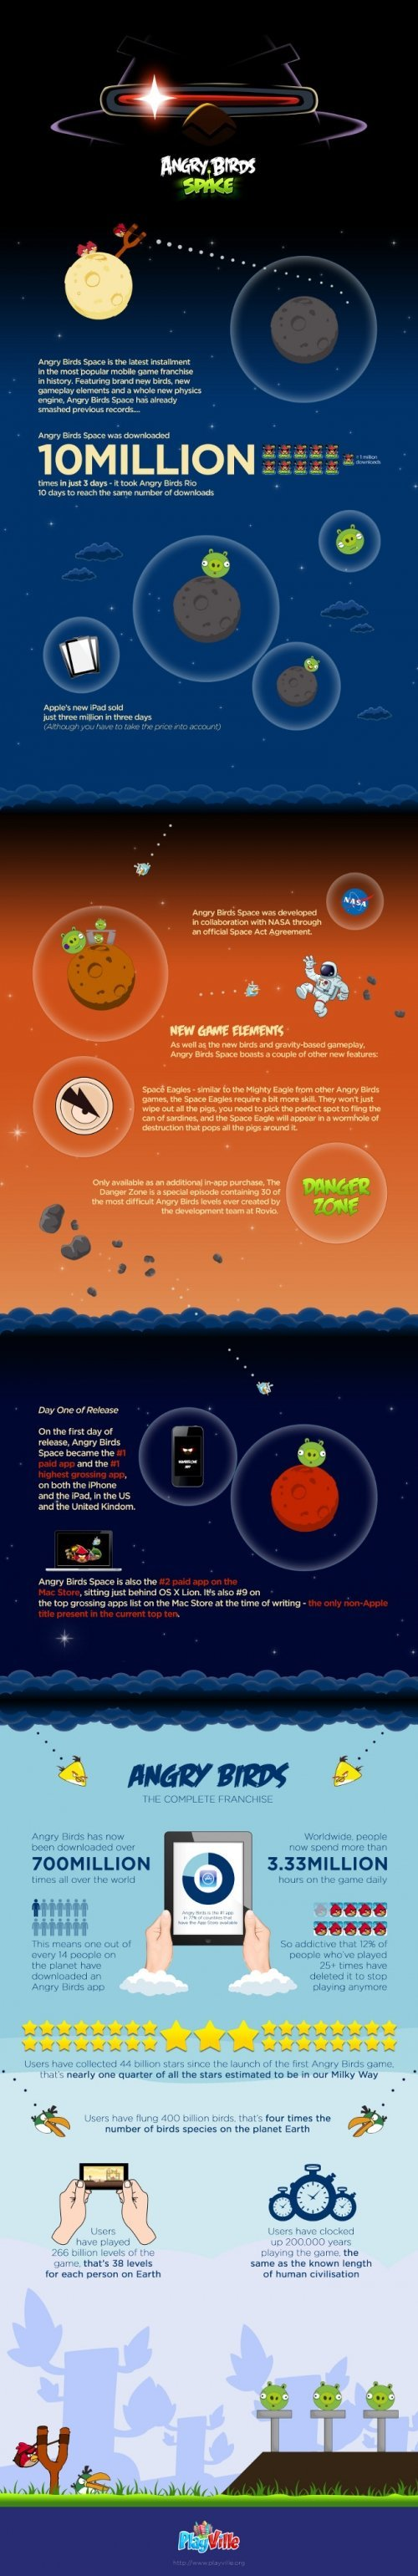 angry birds space vs angry birds infographic